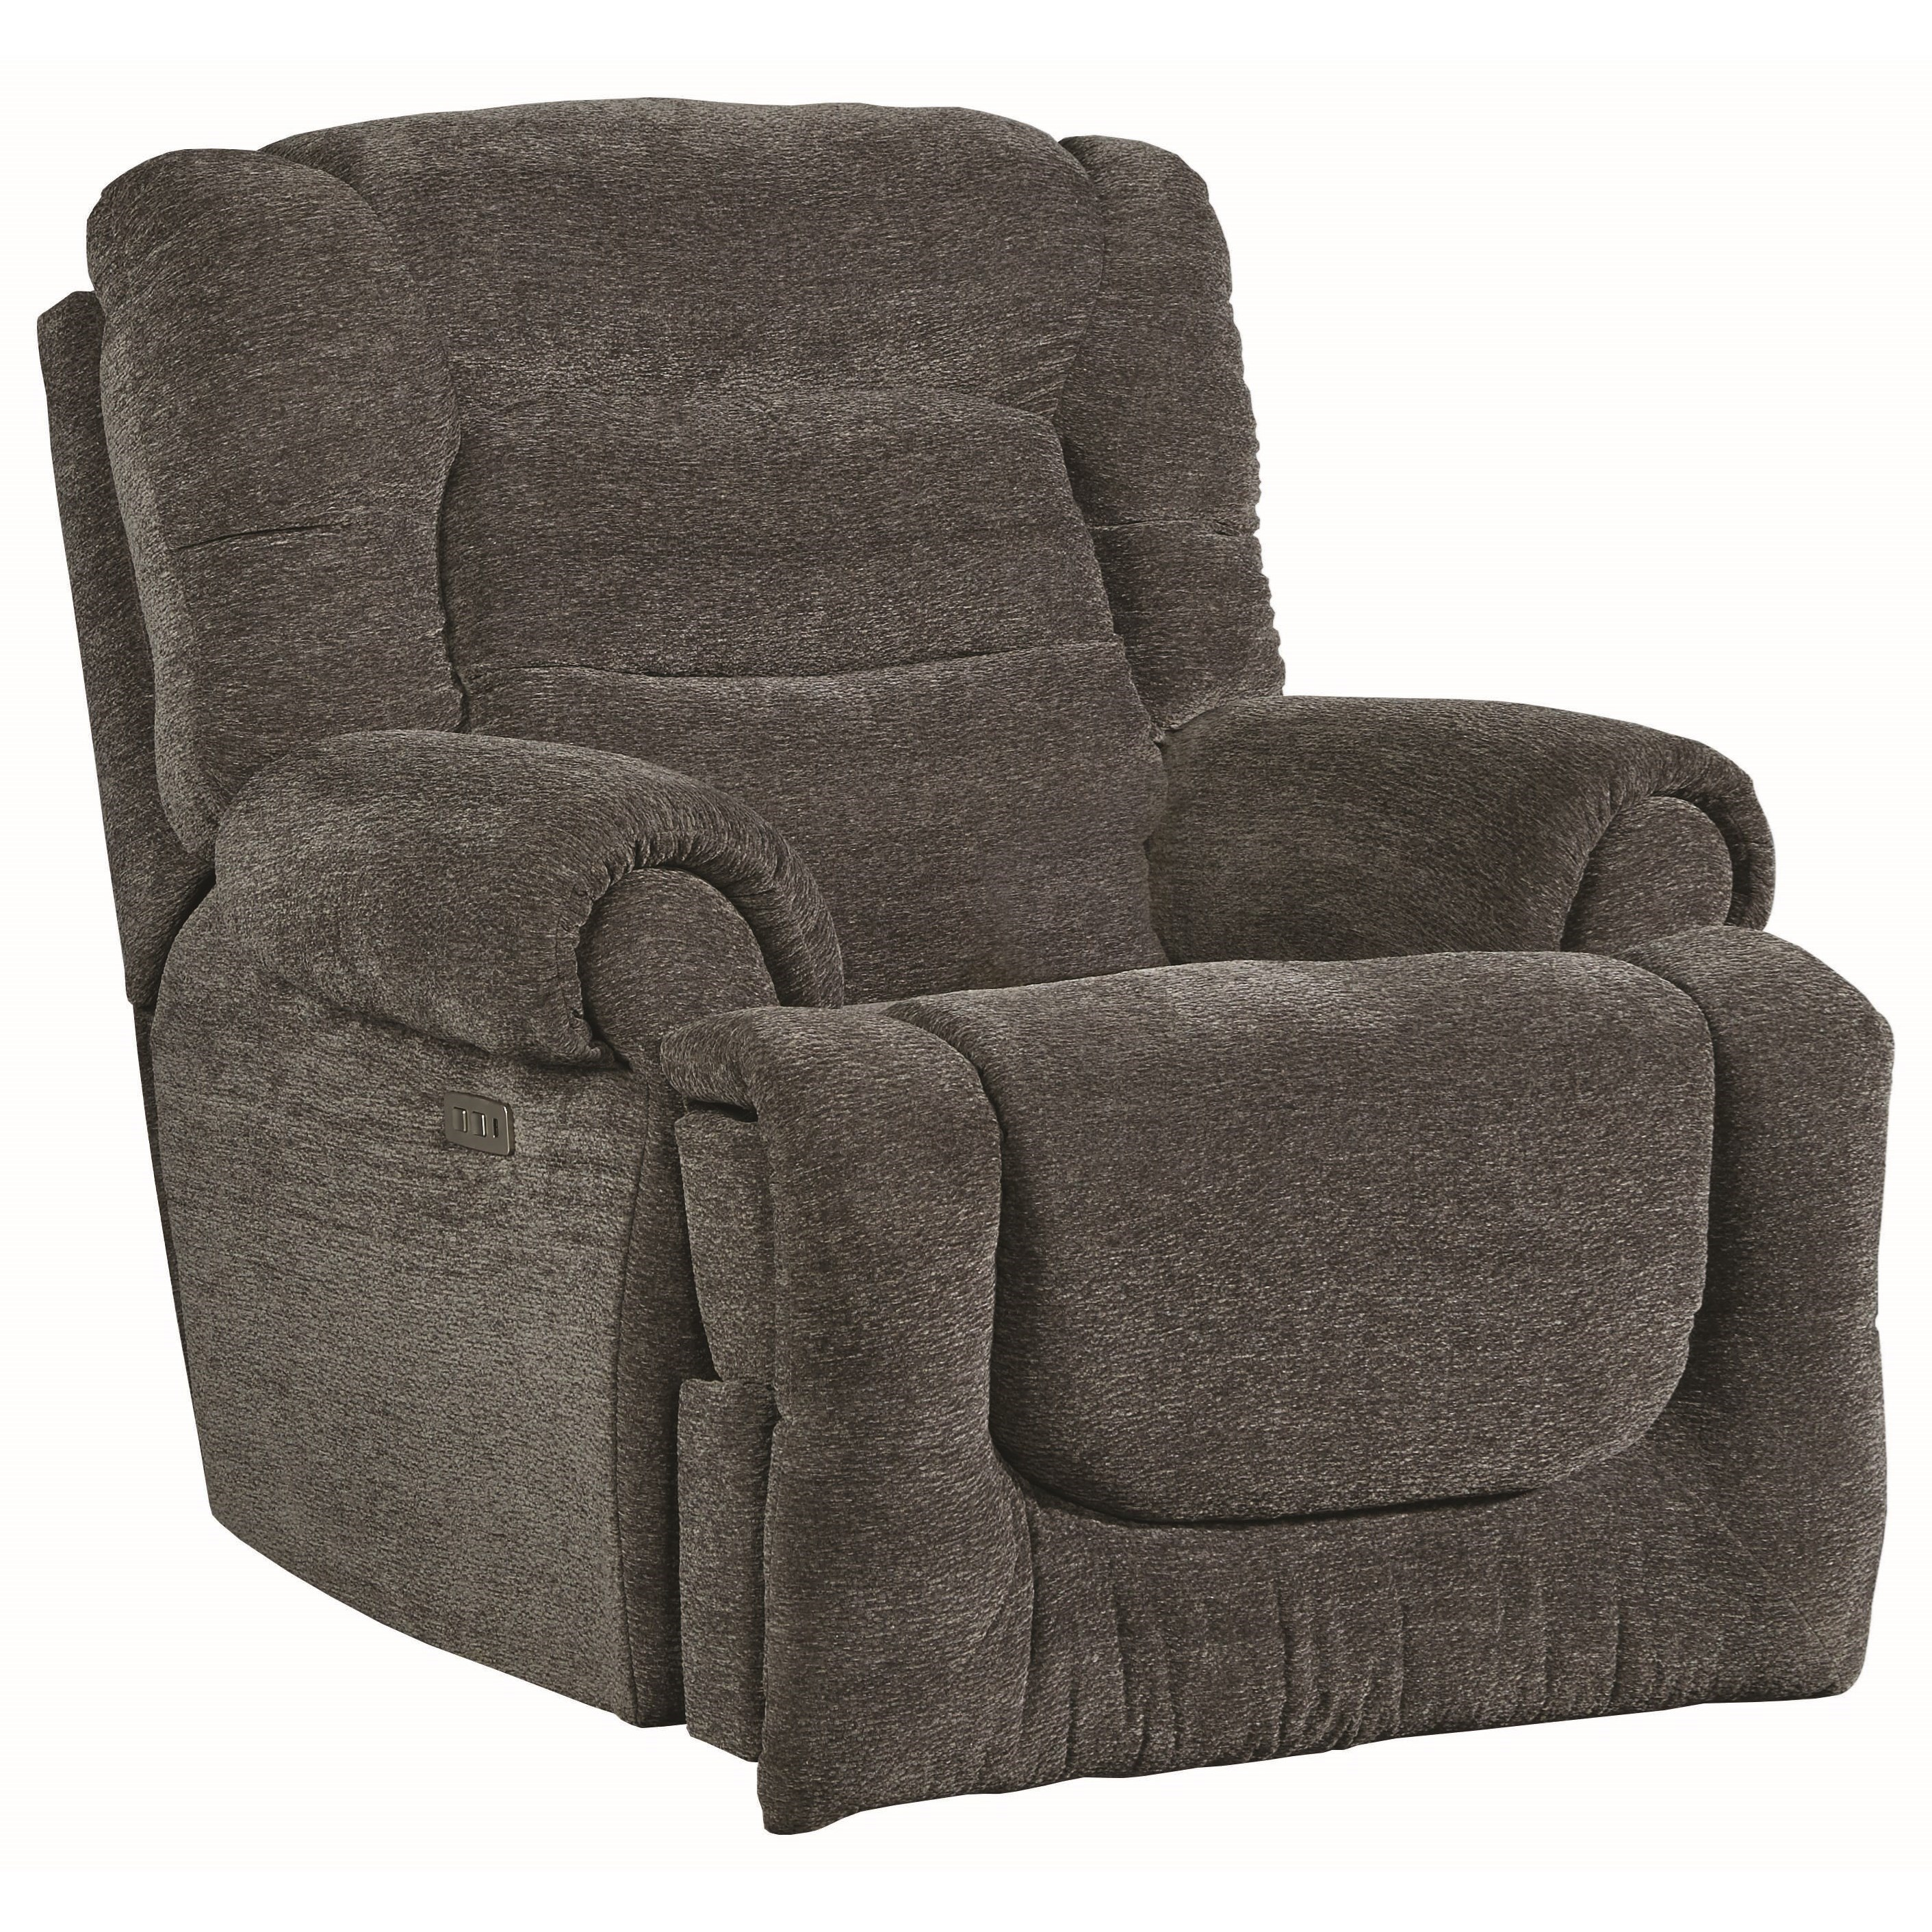 All Star Pwr Headrest Big Man's Wall Hugger Recliner by Southern Motion at Suburban Furniture